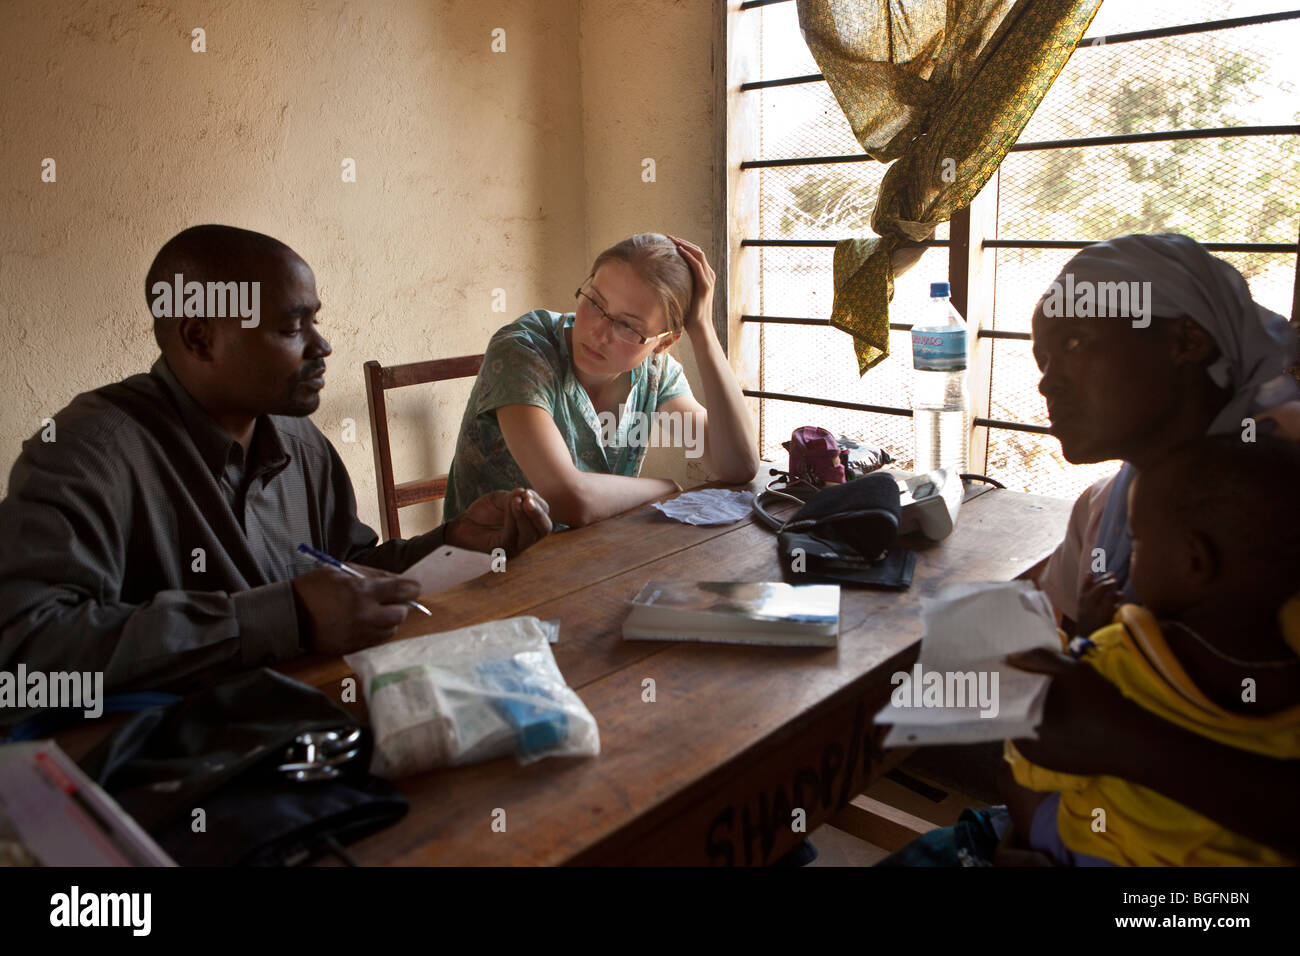 A western volunteer doctor consults patients in Tanzania. Stock Photo